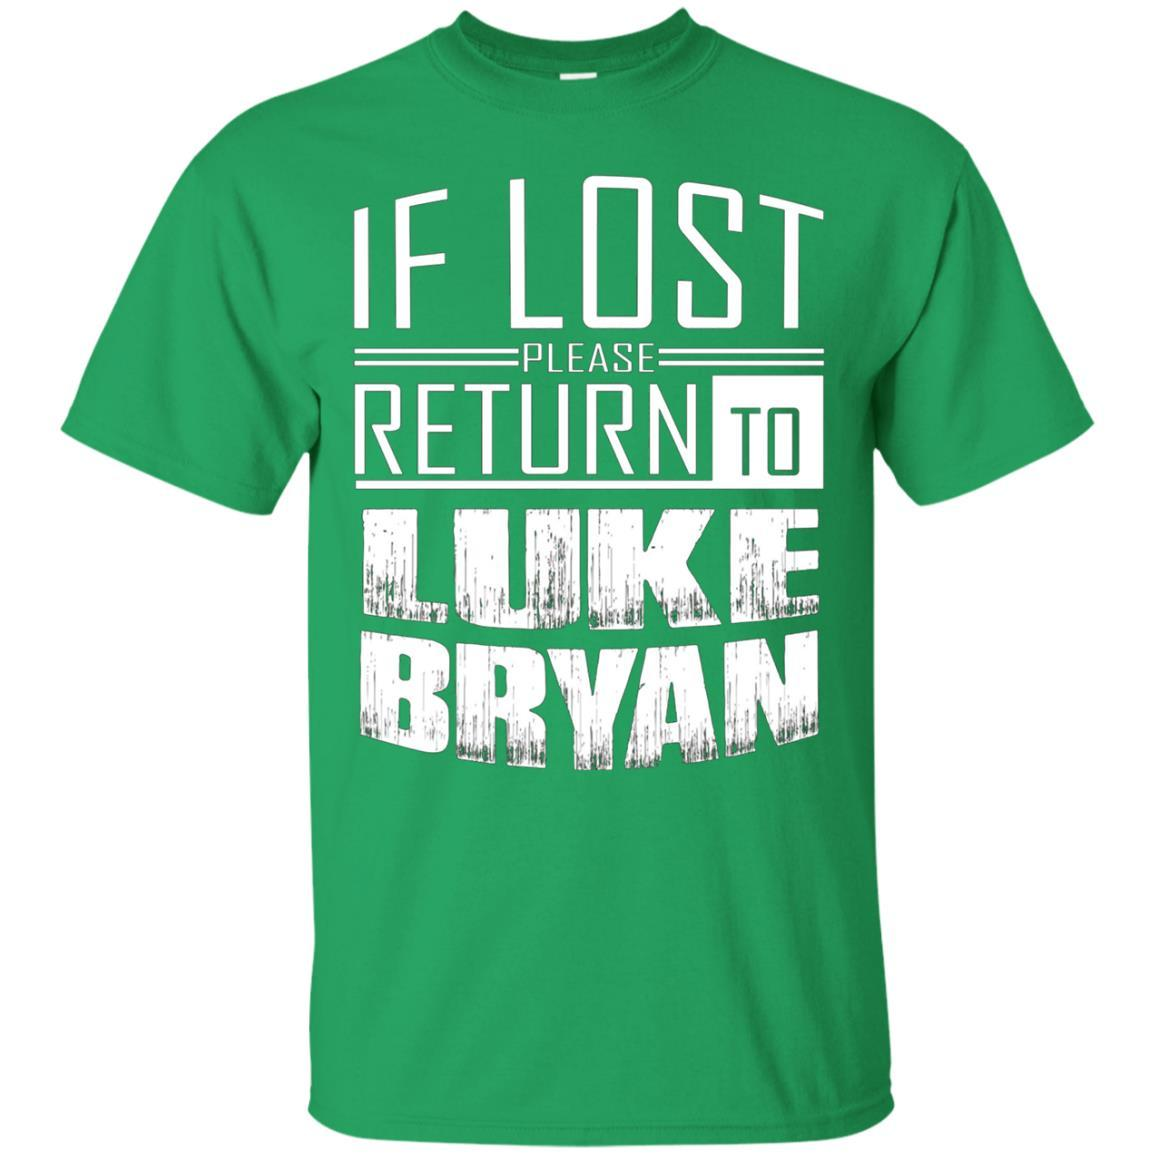 if lost please return to luke name bryan T-Shirt Irish Green / 5XL